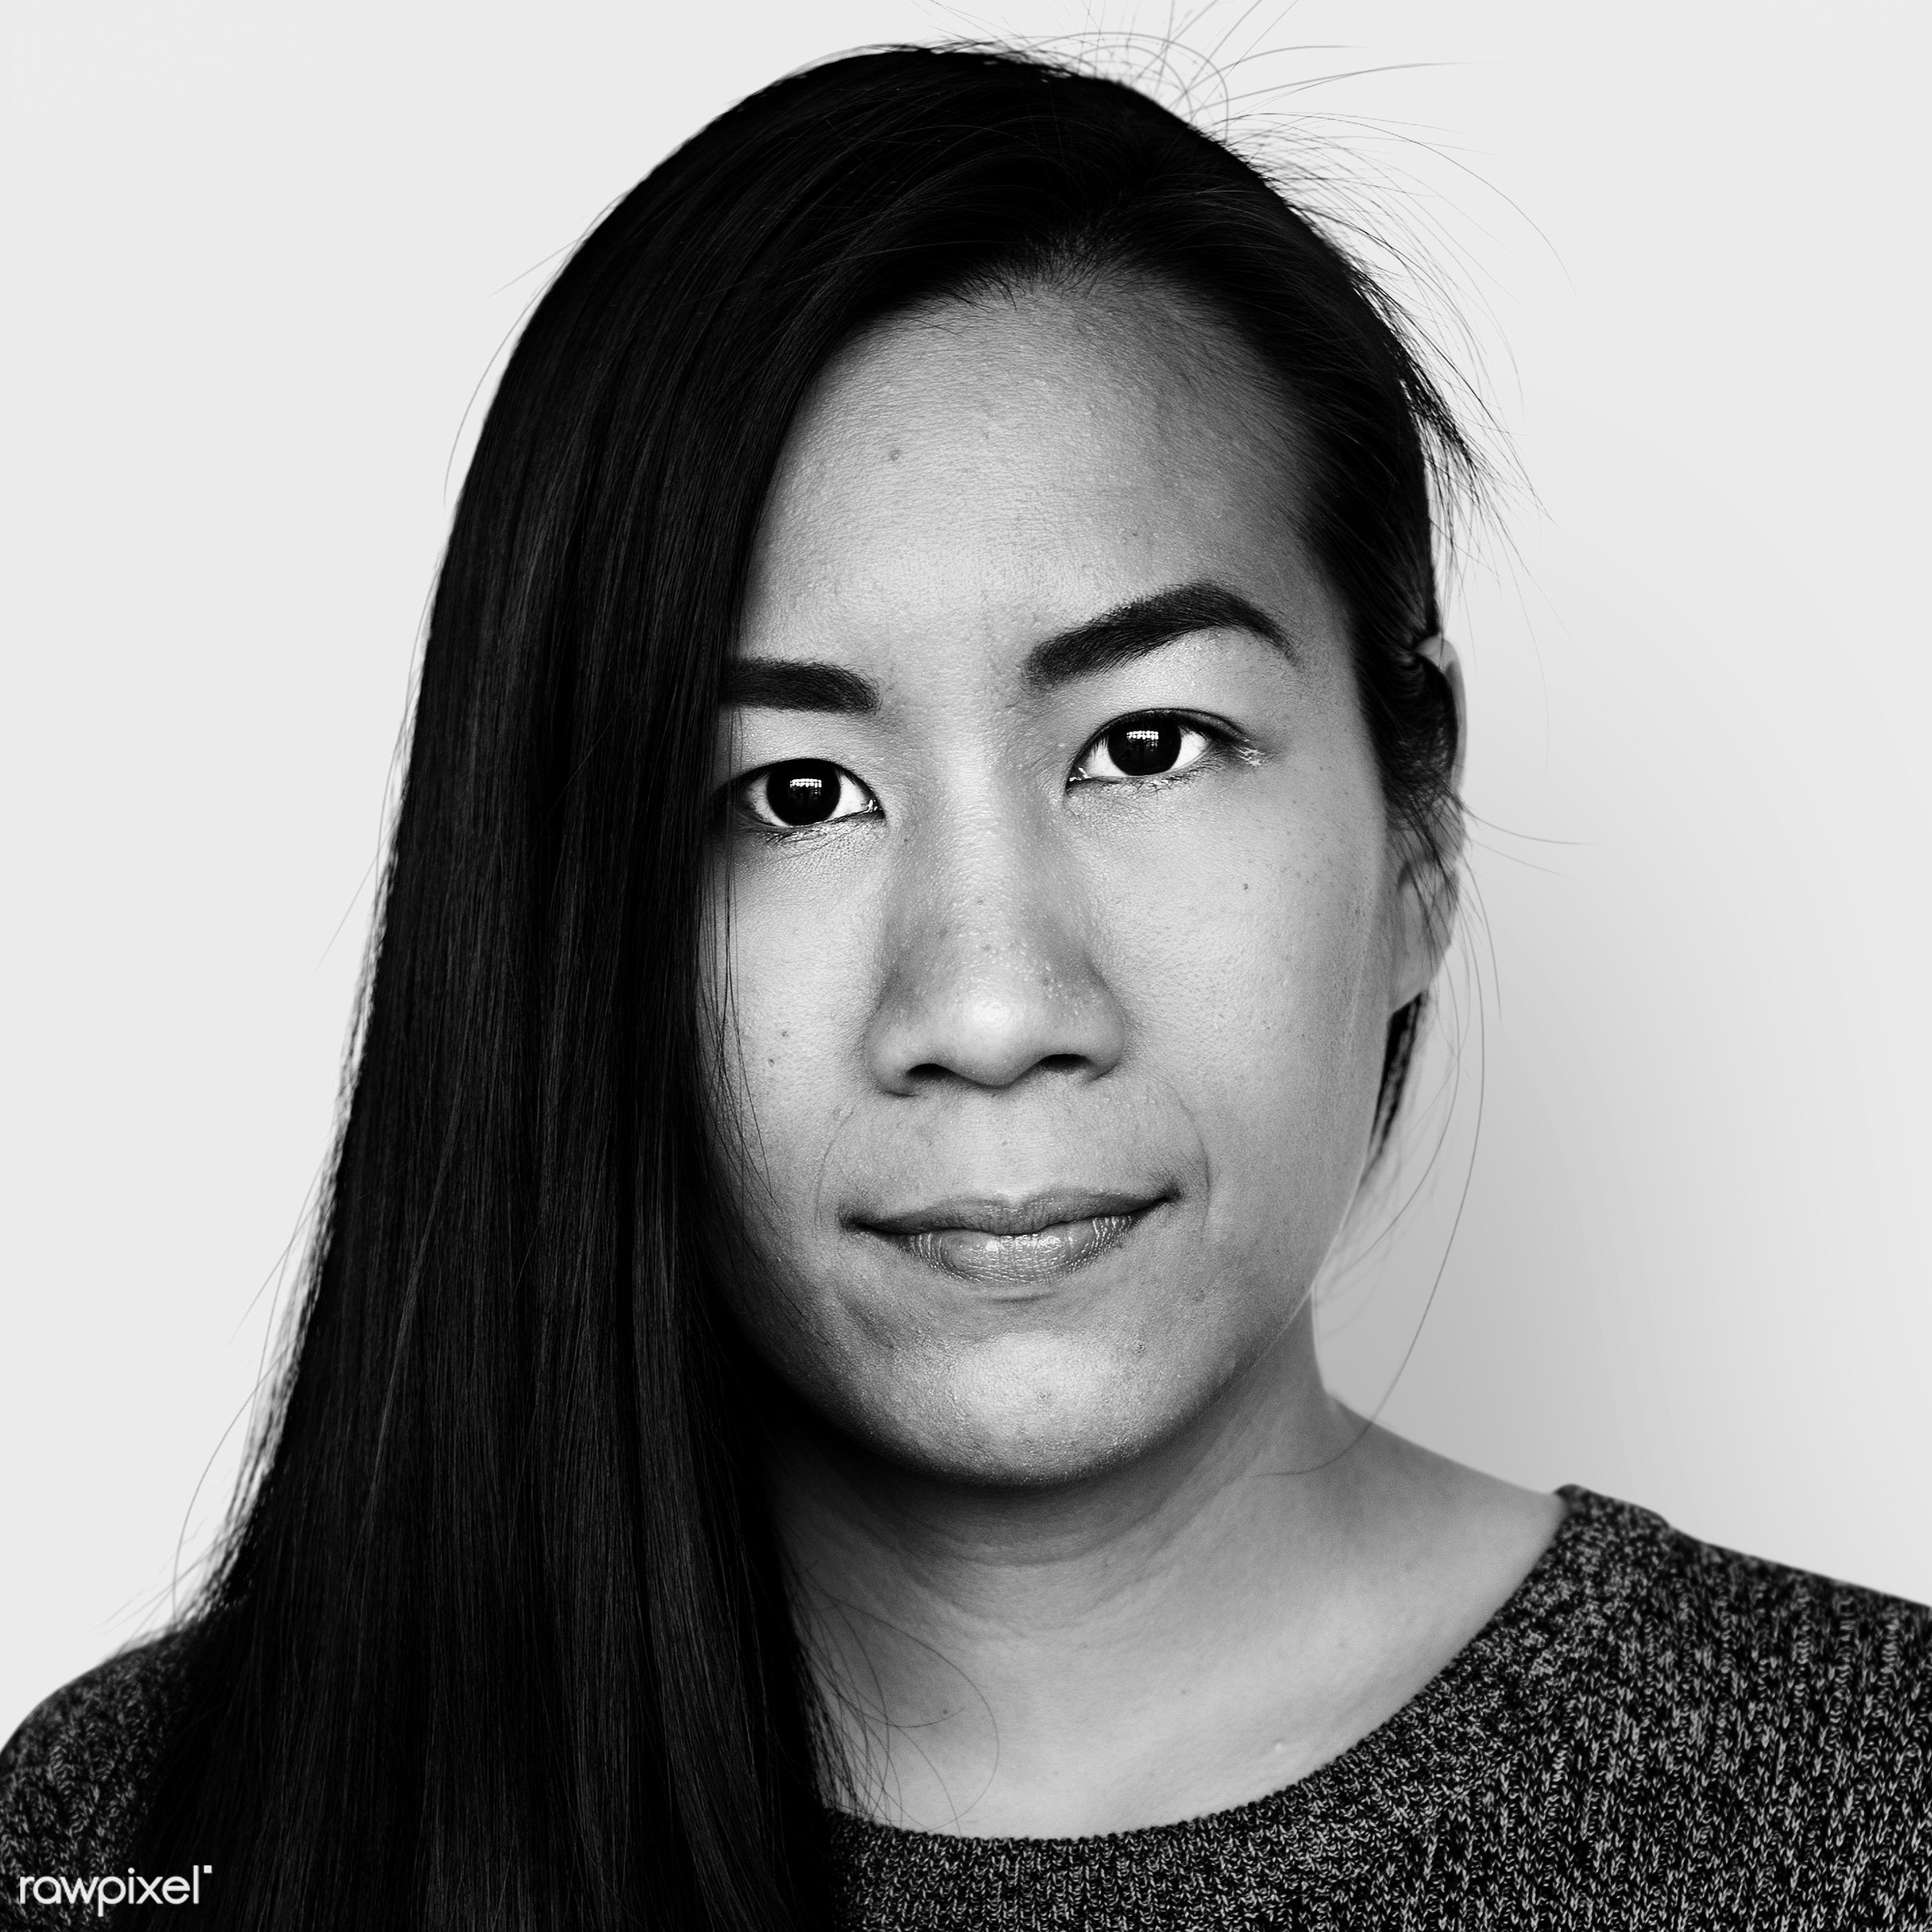 Portrait of a Malaysian woman - alone, asian, black and white, casual, emotion, expression, face, feeling, grayscale,...